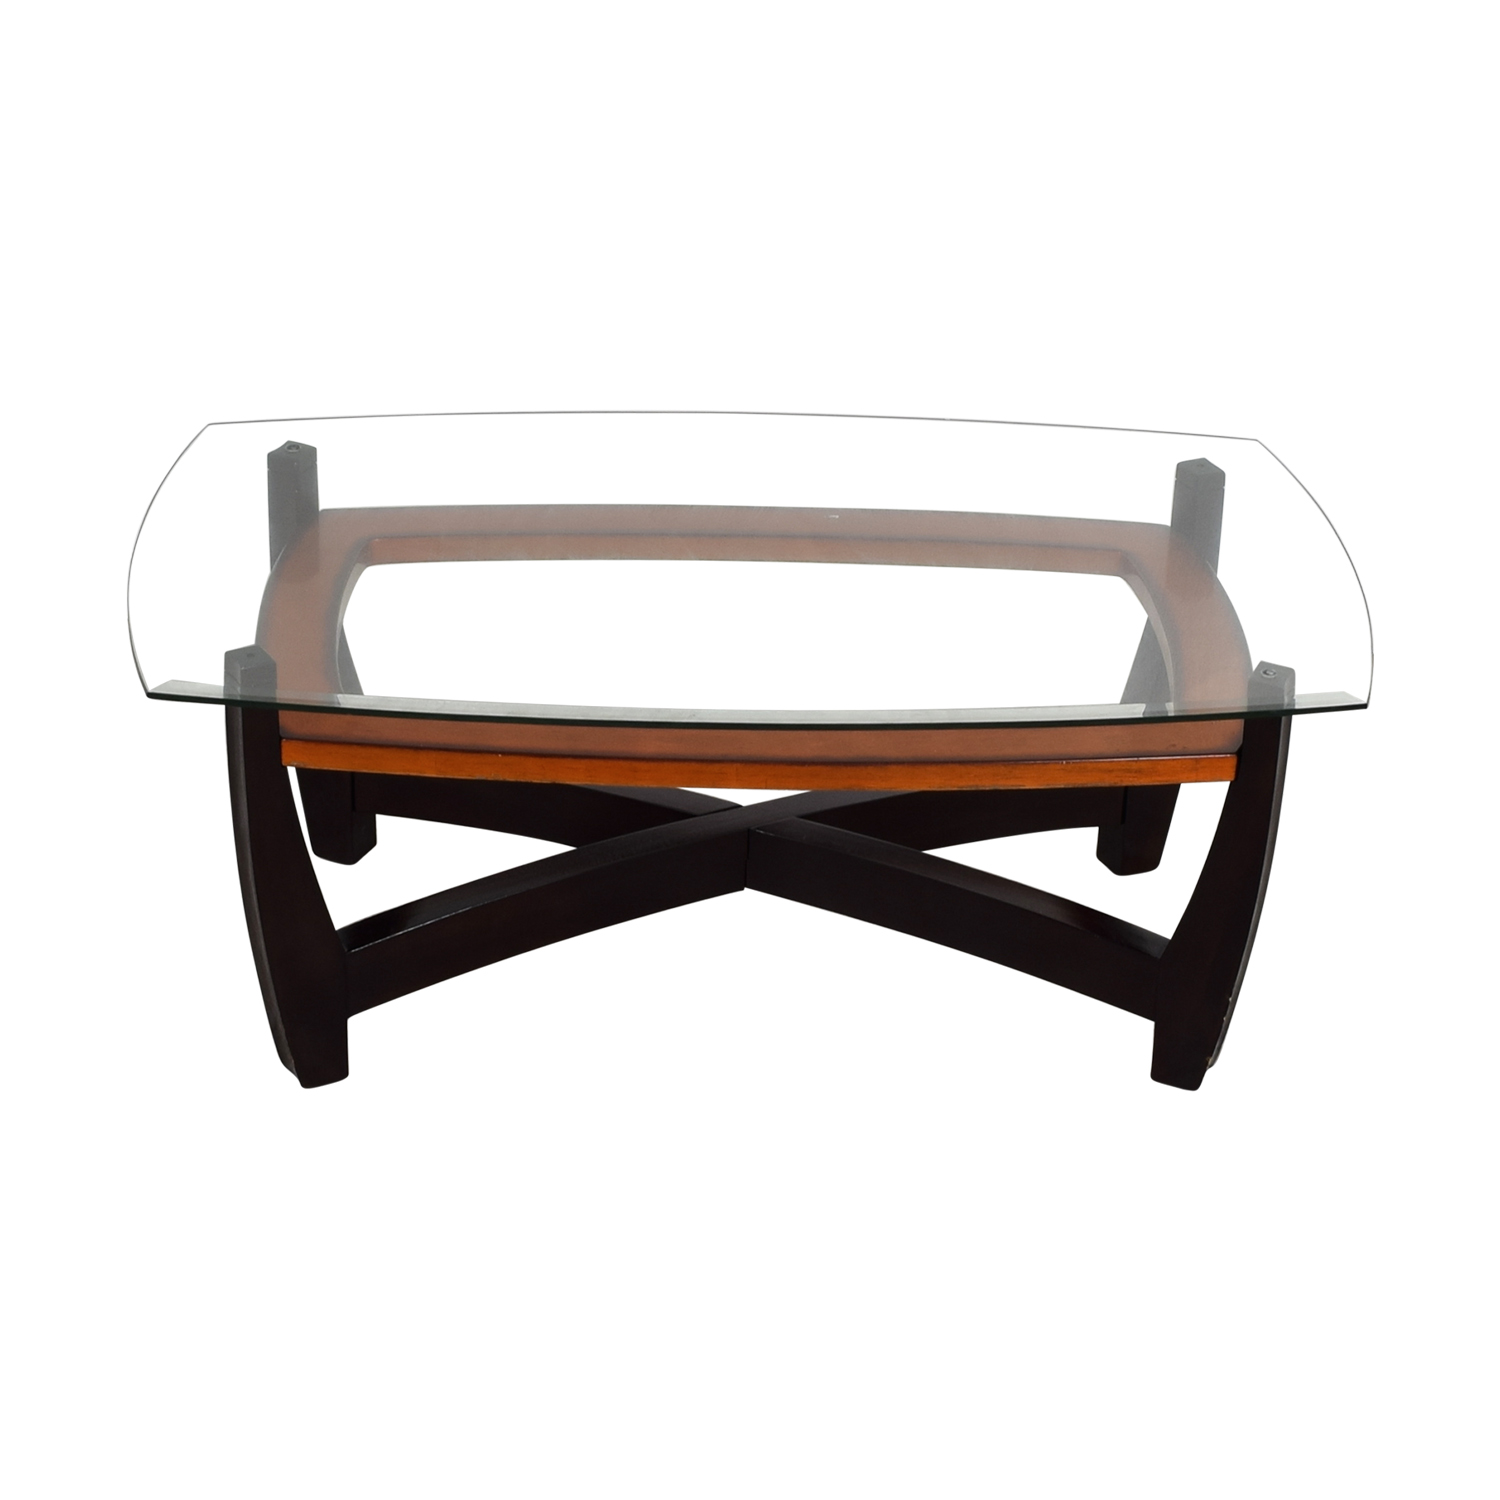 Raymour & Flanigan Rectangular Glass Top and Wood Coffee Table / Sofas